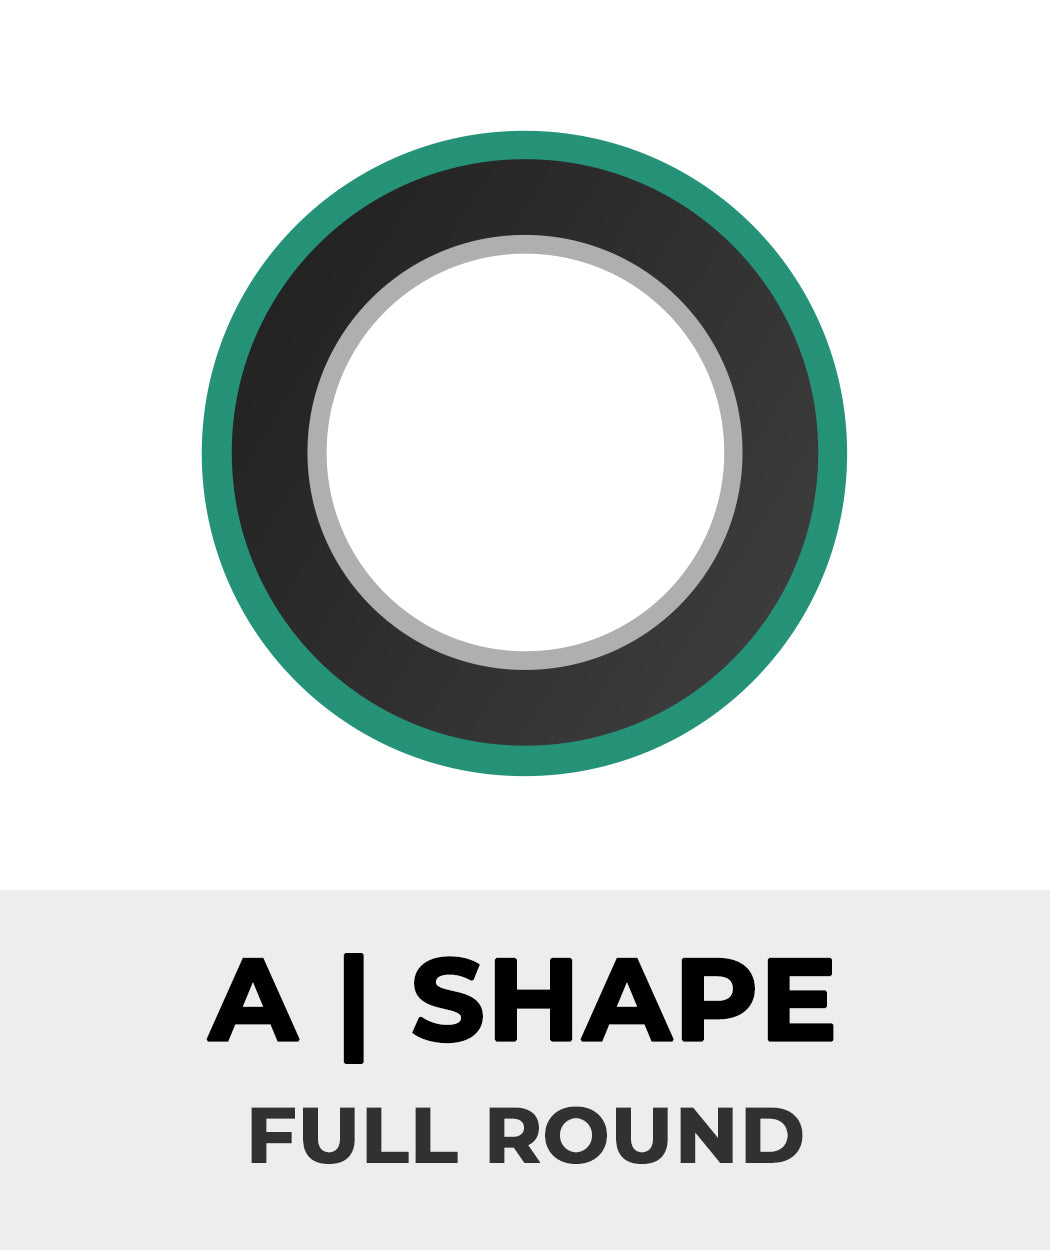 Plan Shape A - Full Round